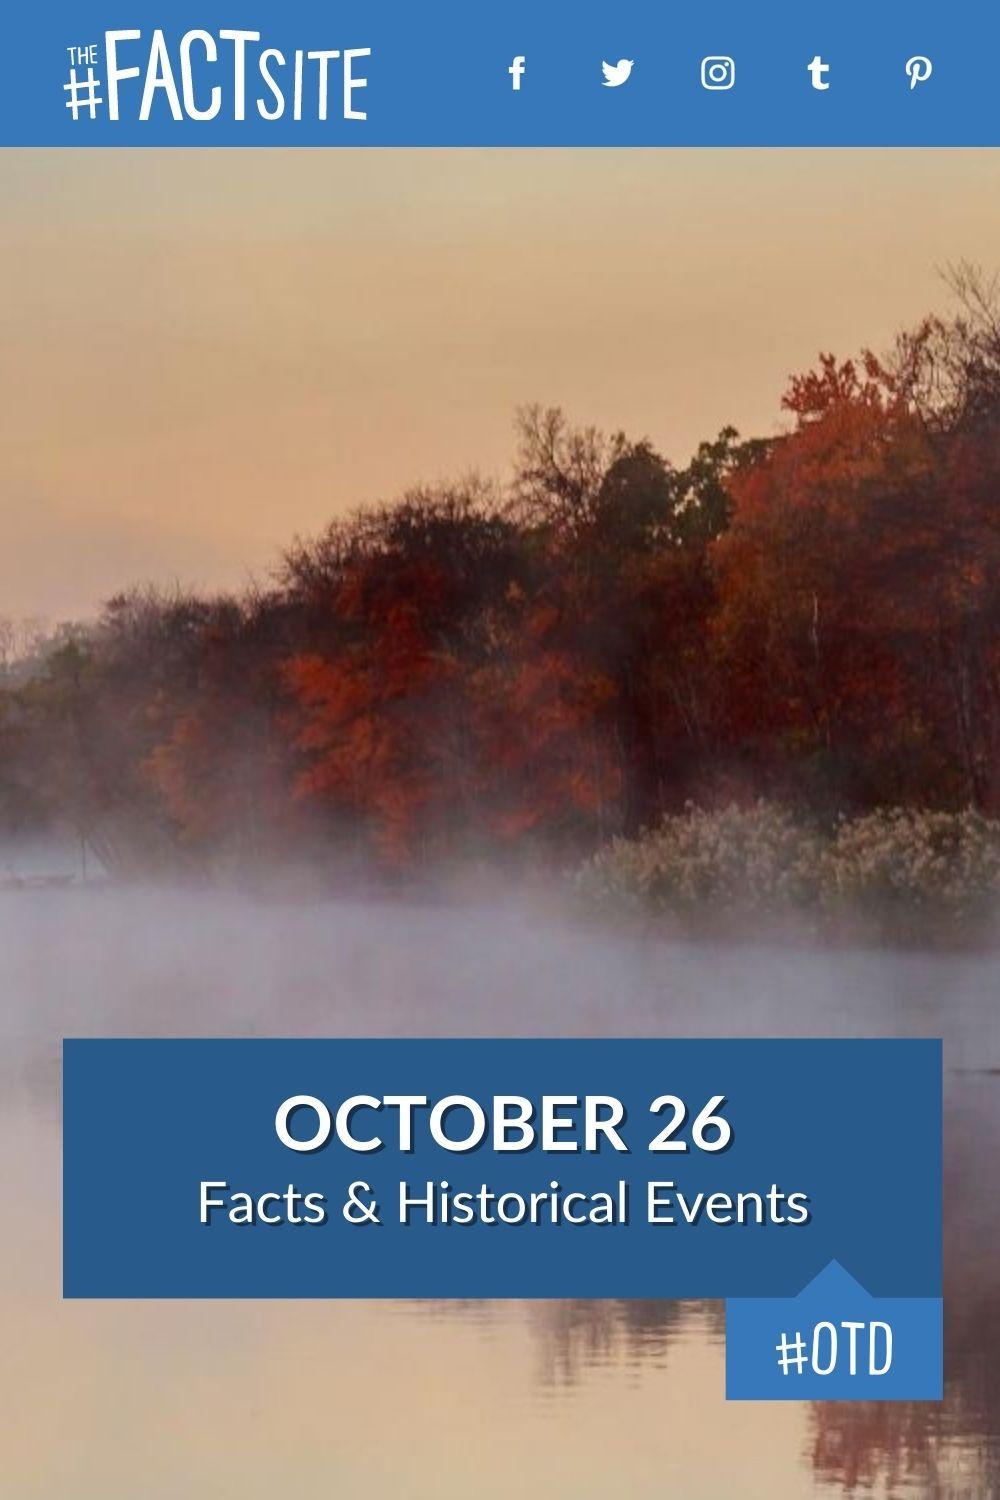 Facts & Historic Events That Happened on October 26